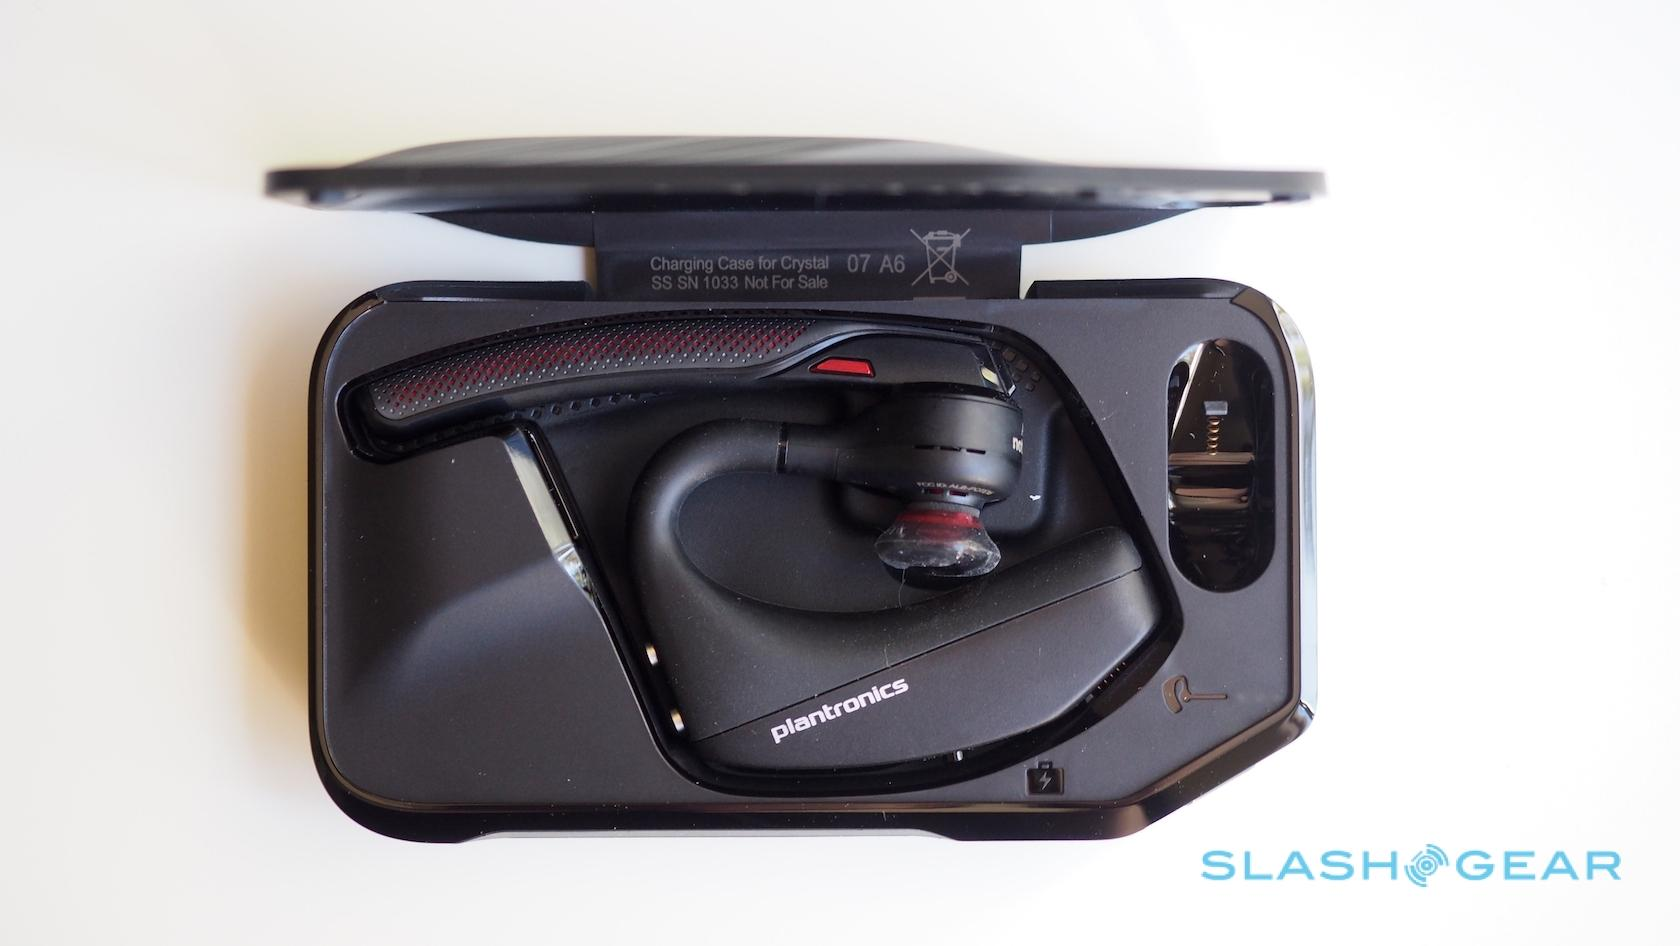 plantronics-voyager-5200-review-13